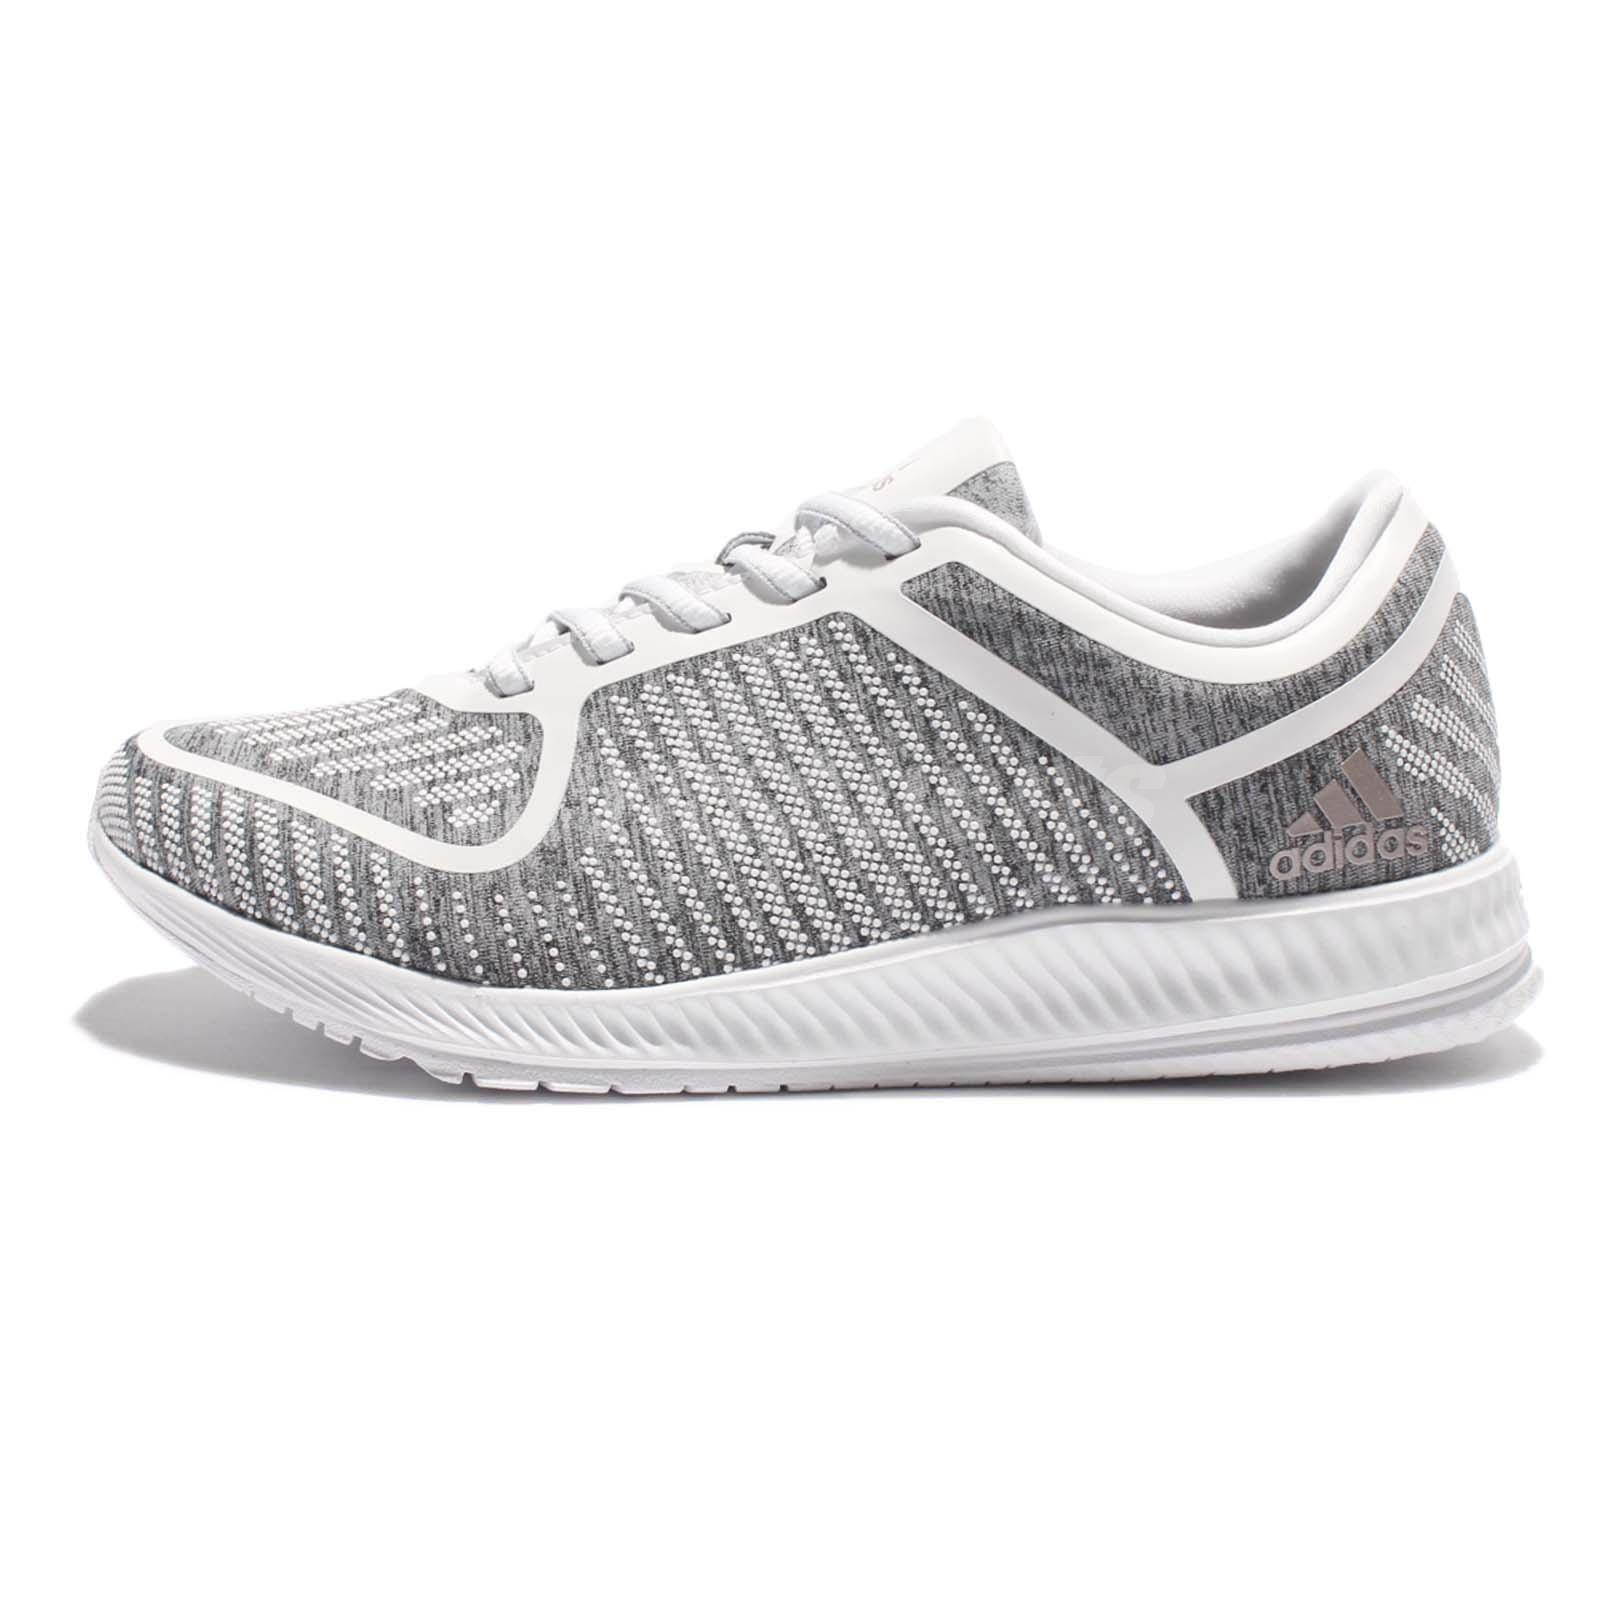 adidas Athletics B W Bounce Grey White Women Cross Training Shoes Sneaker  BB1544